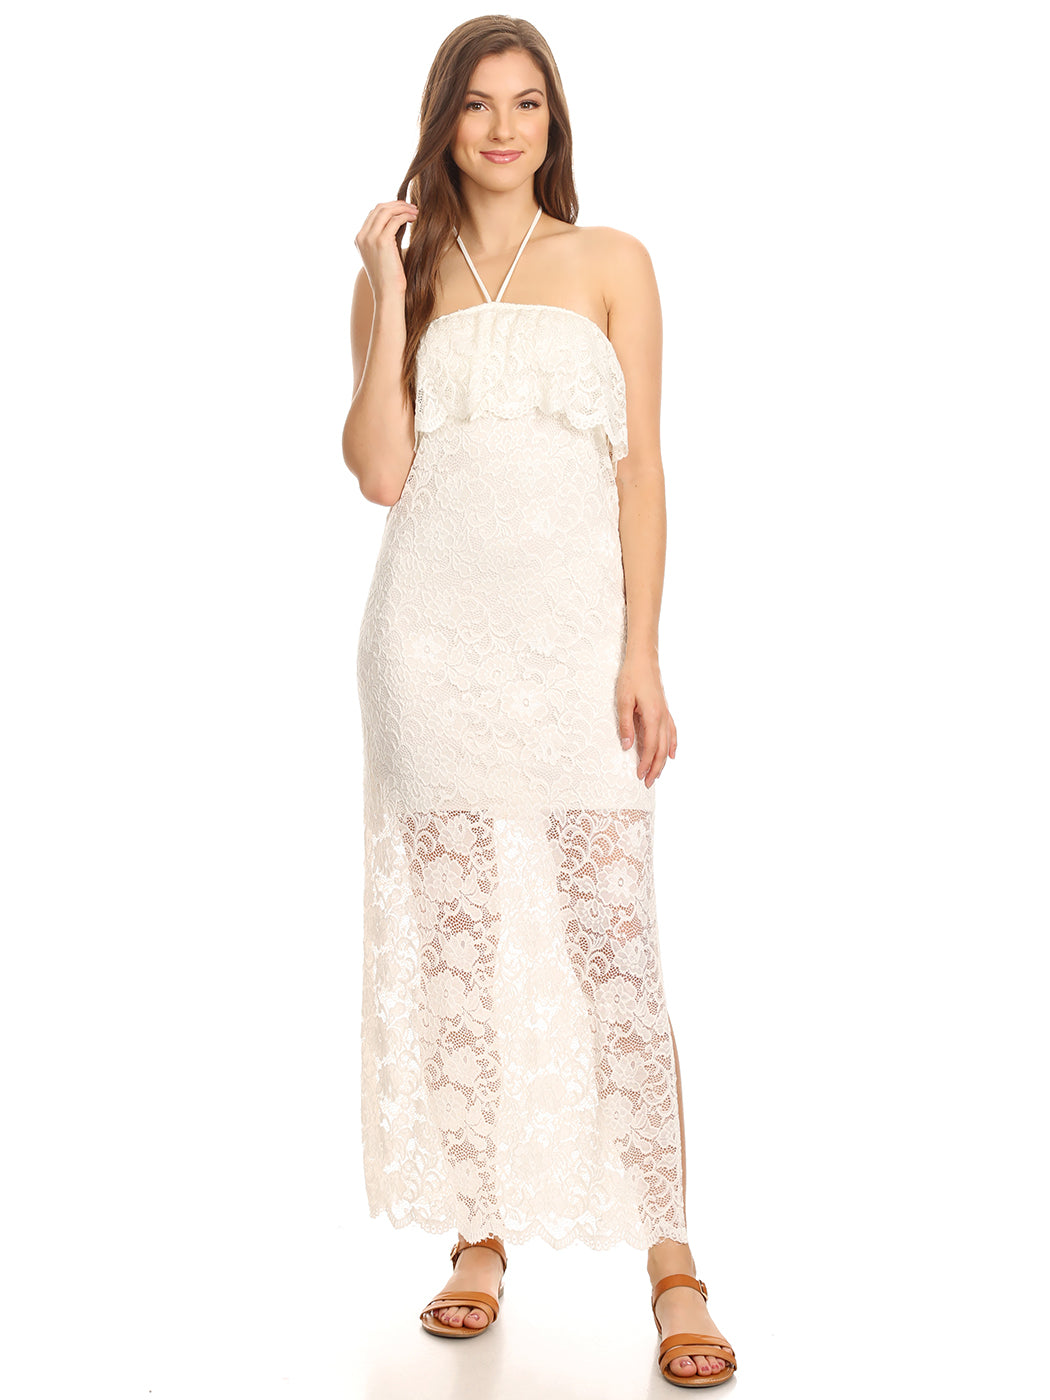 Anna-Kaci Womens White Lace Convertible Halter Strapless Maxi Dress Cover Up, White, Small